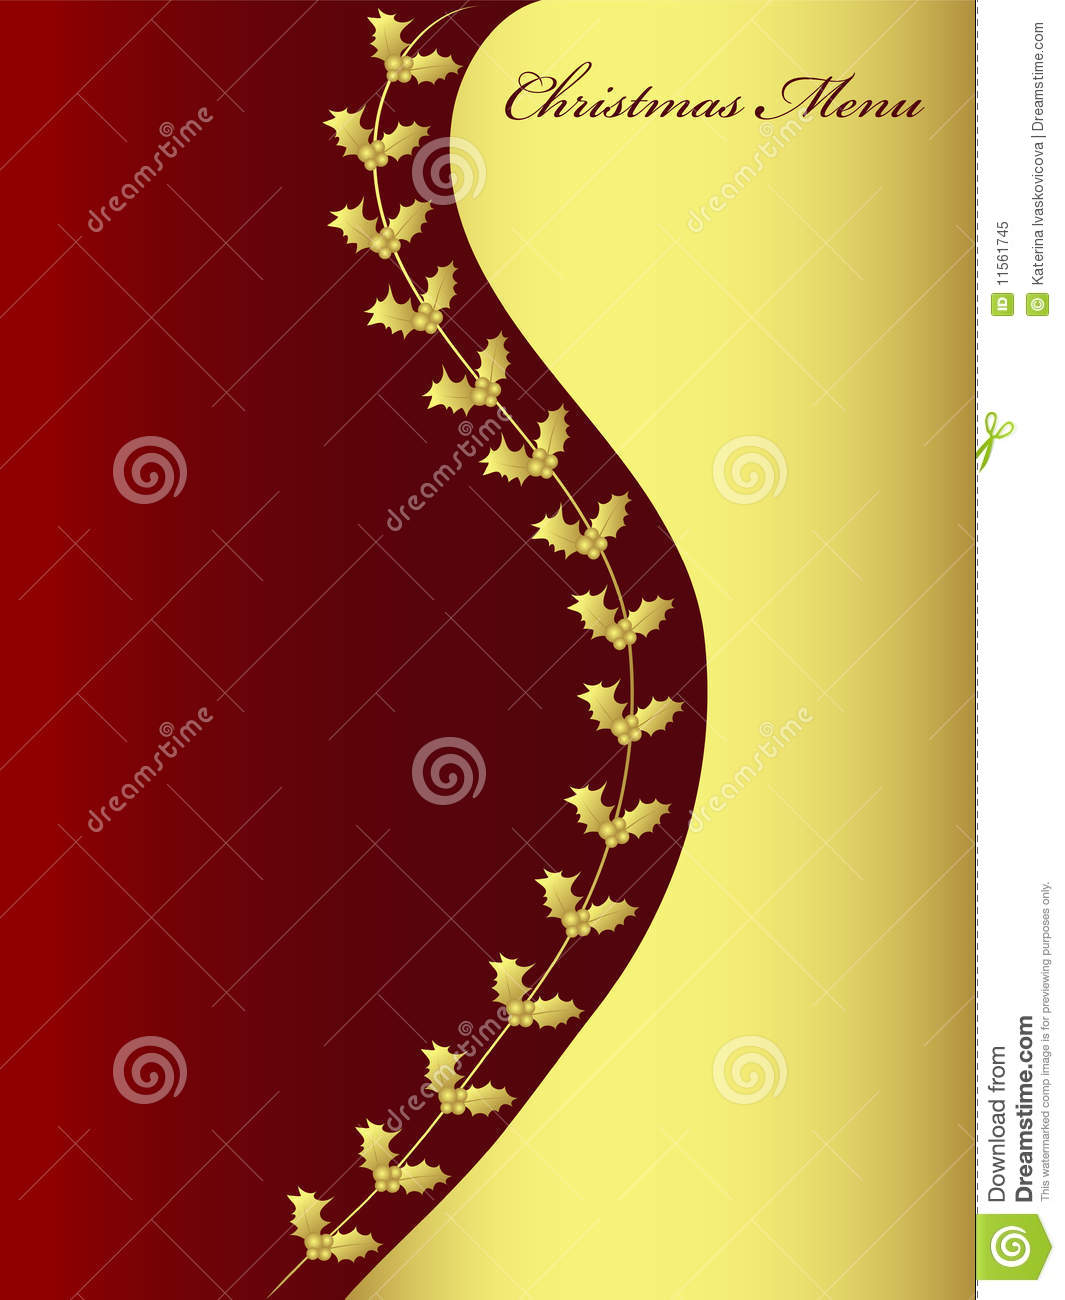 Background For Christmas Menu Vector Stock Vector